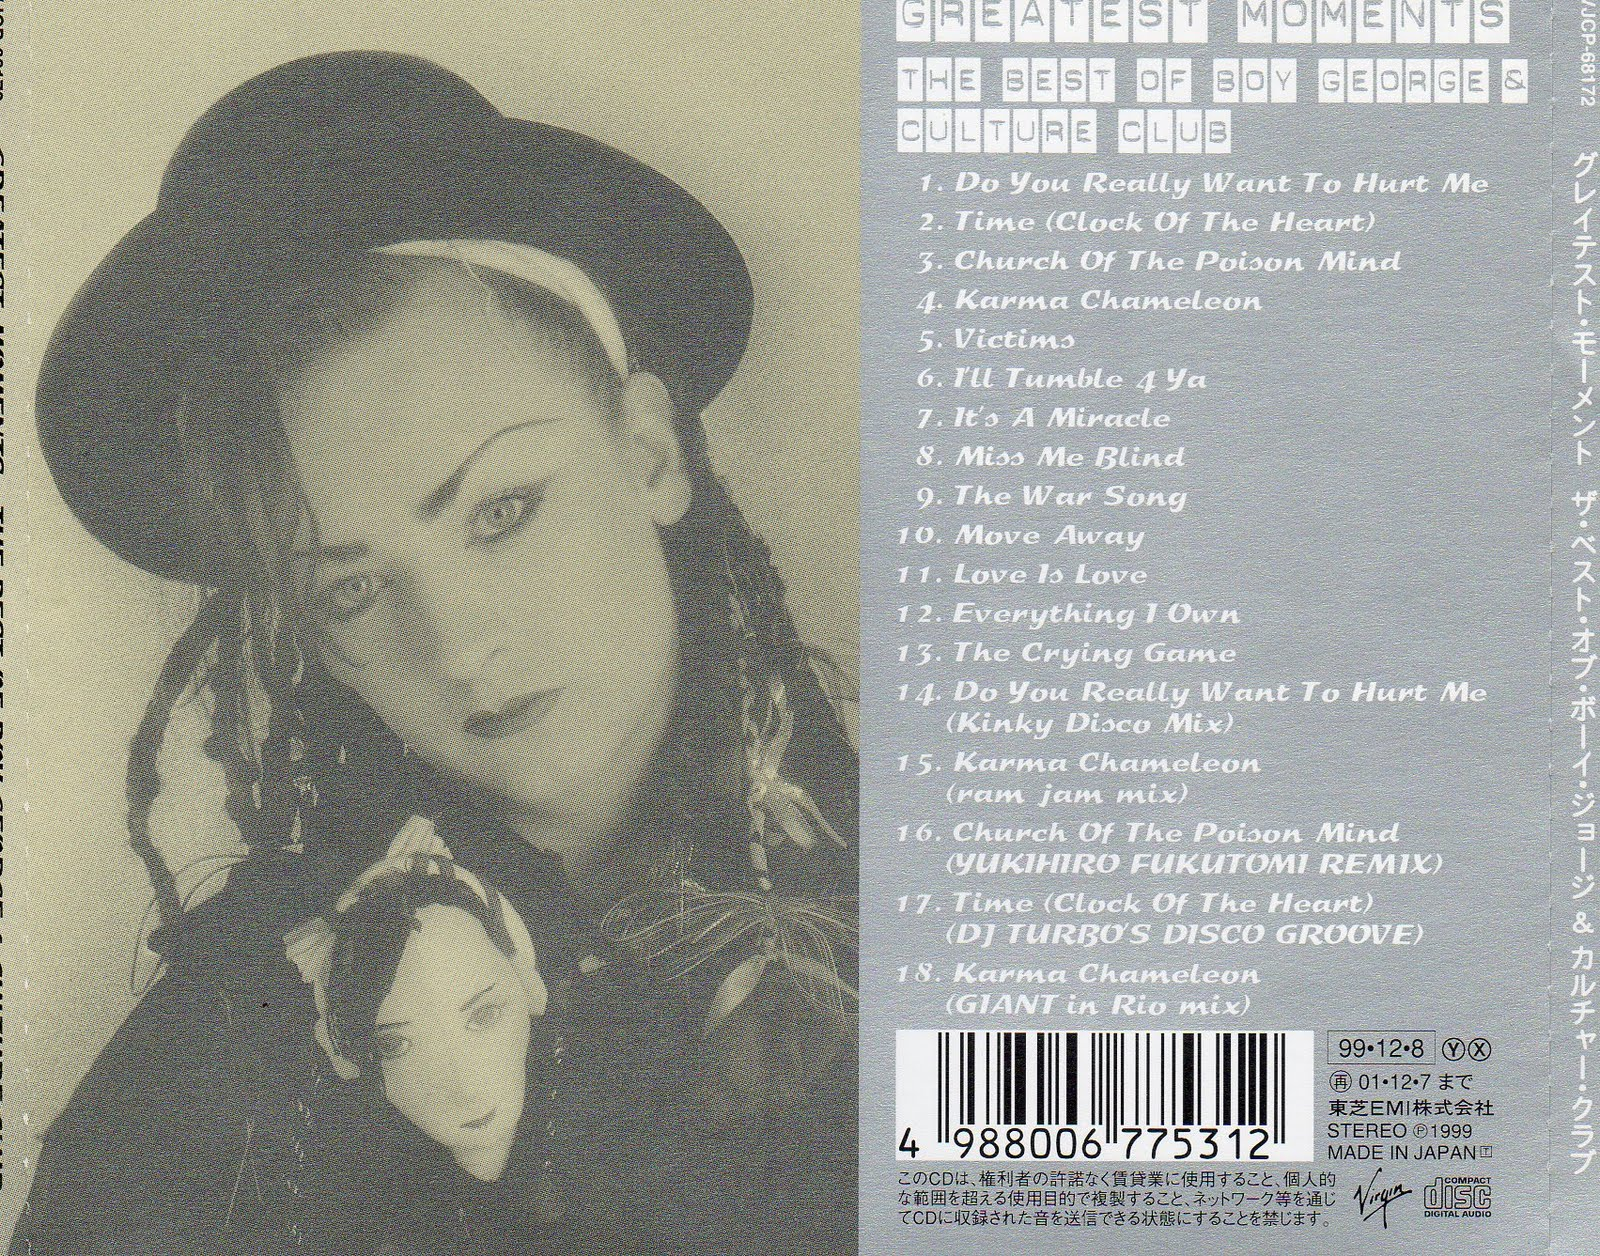 Ma Boygeorgetheque Greatest Moments The Best Of Boy